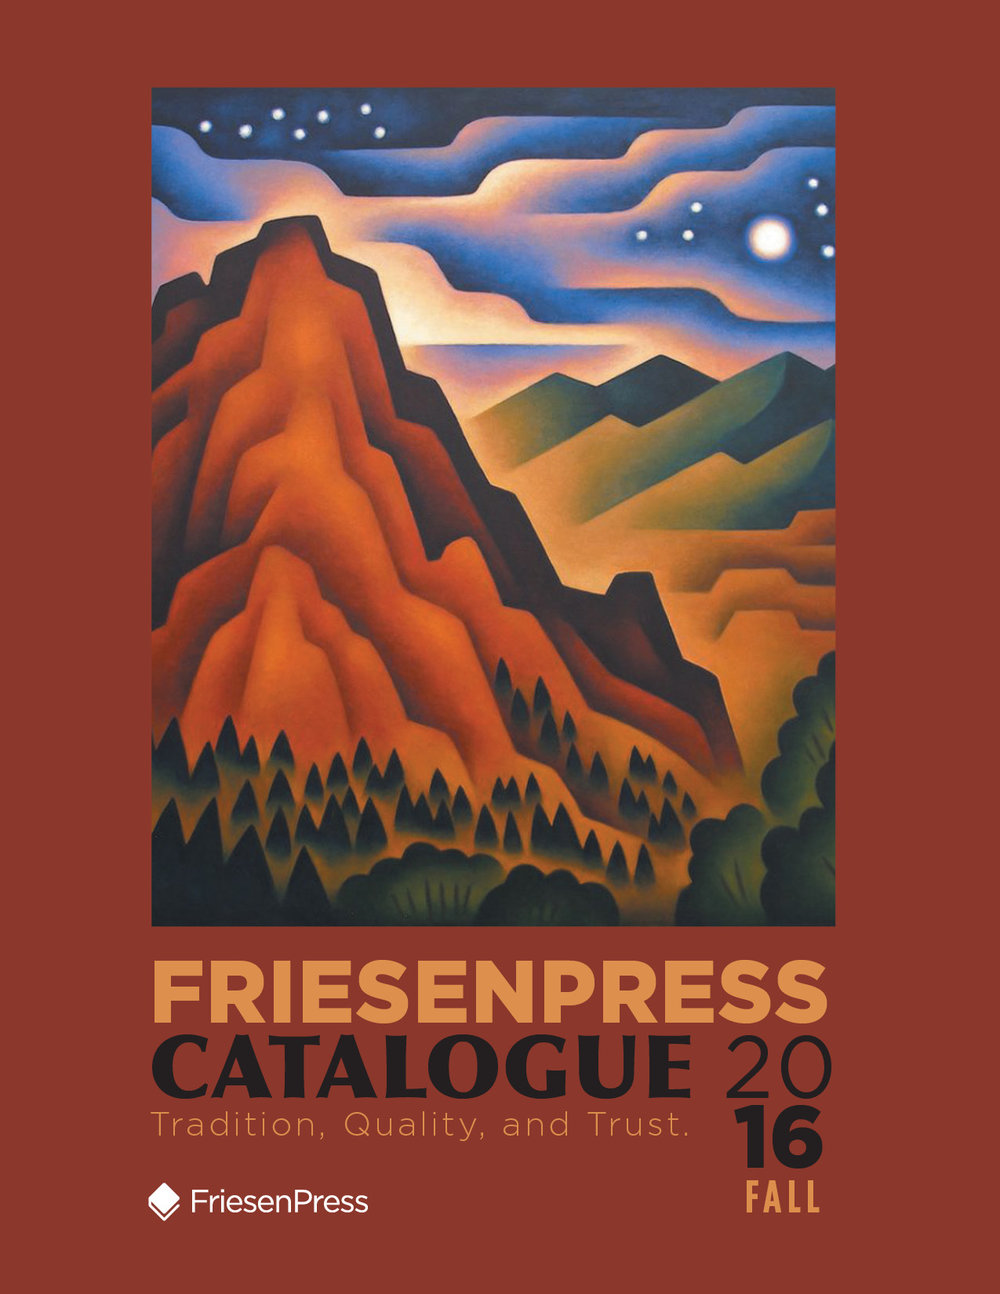 Fall 2016 FriesenPress Catalogue